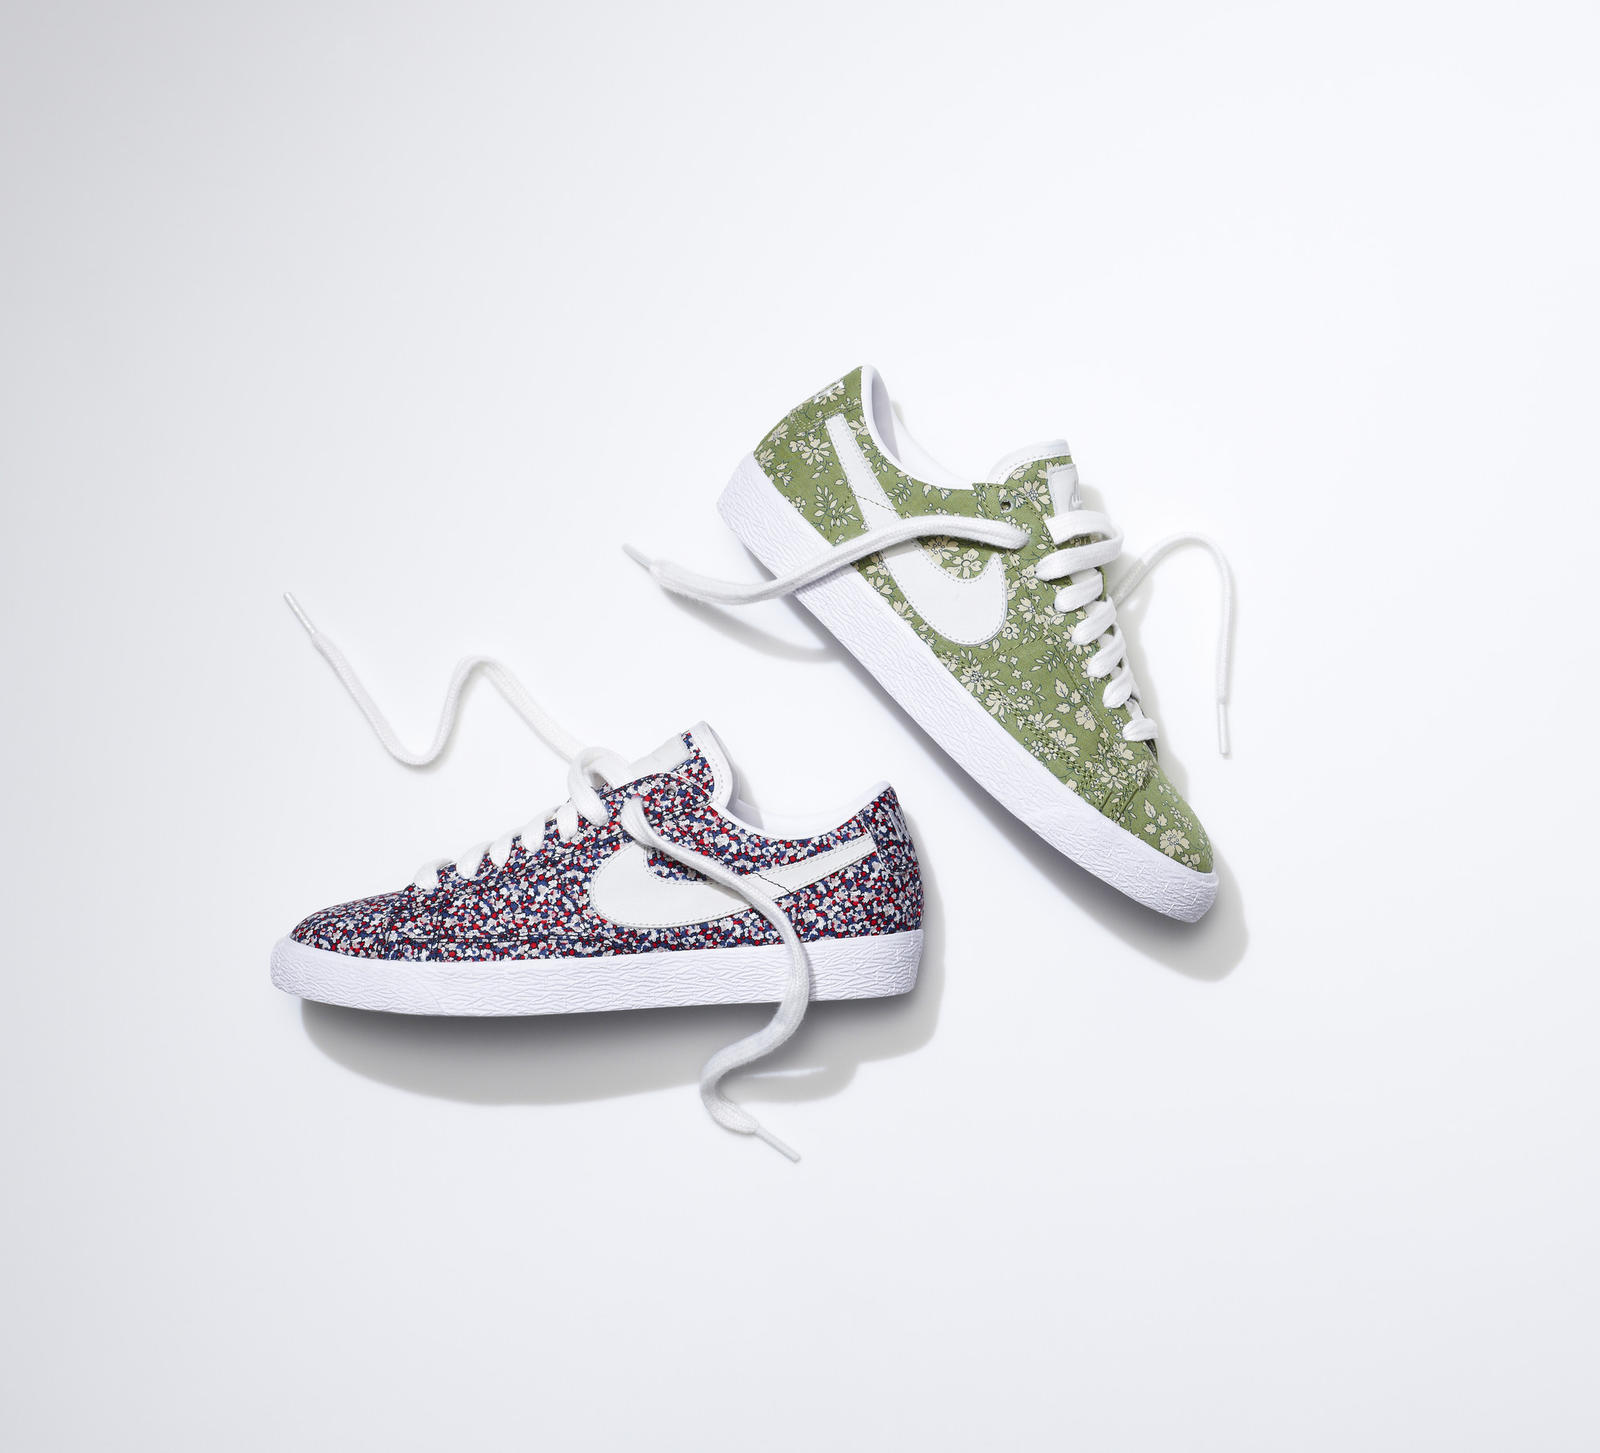 official photos 39e74 6e696 Floral Firsts Liberty of London on NIKEiD - Nike News